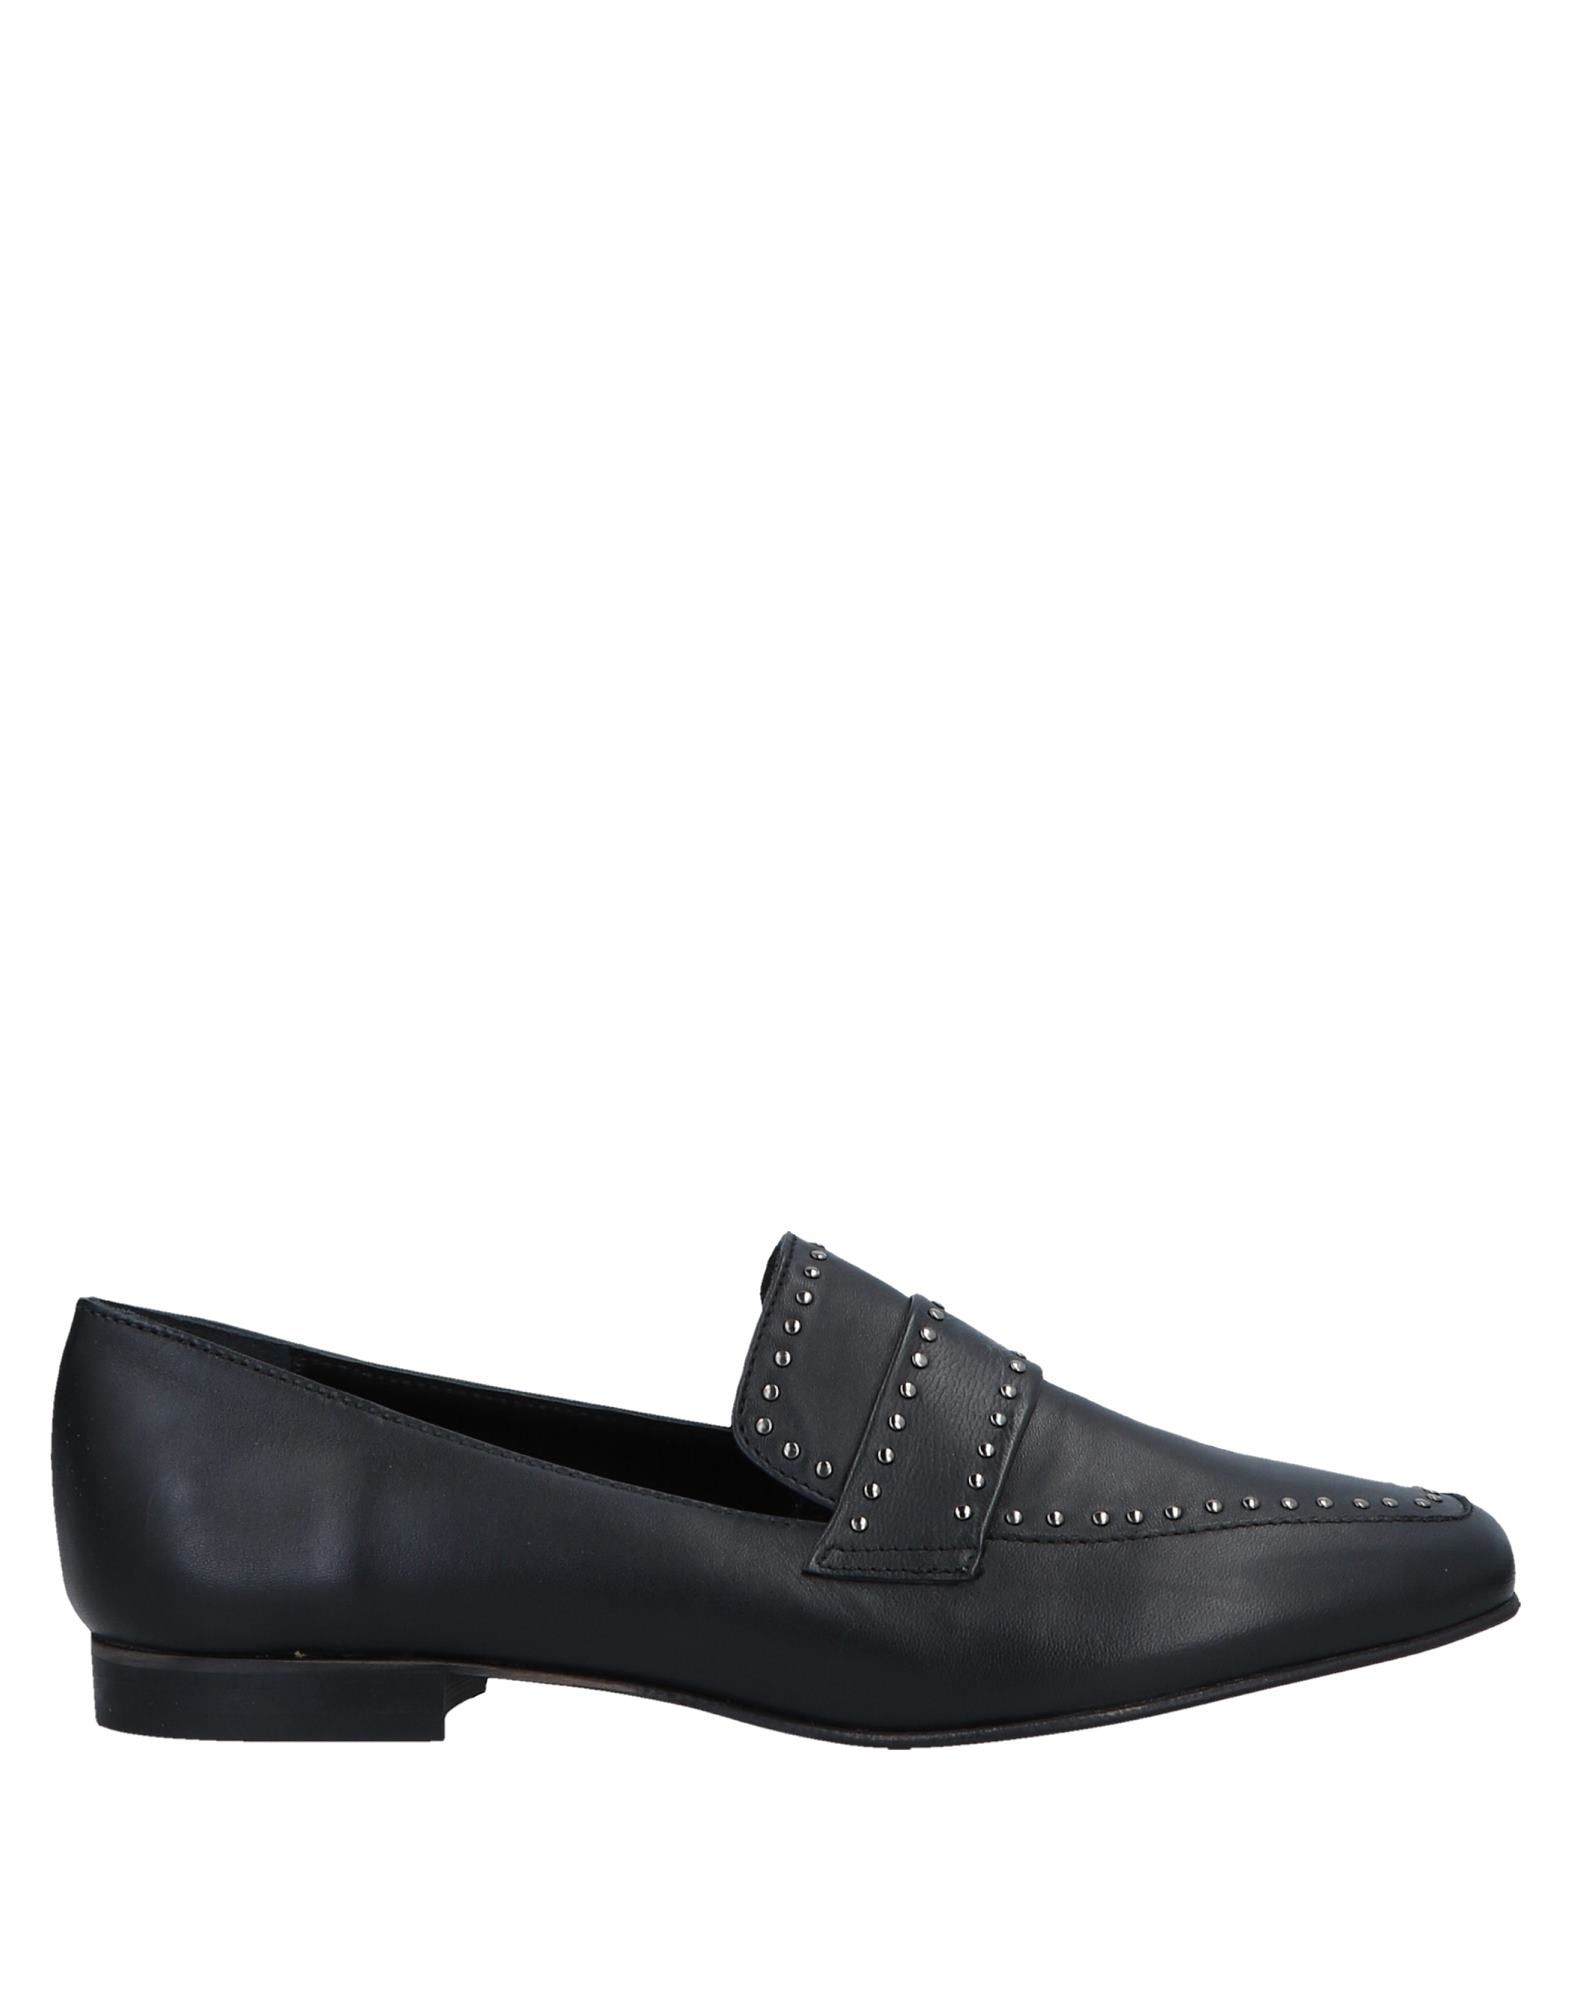 Griff Italia Loafers - Women Griff  Italia Loafers online on  Griff United Kingdom - 11561796JV 3e2feb